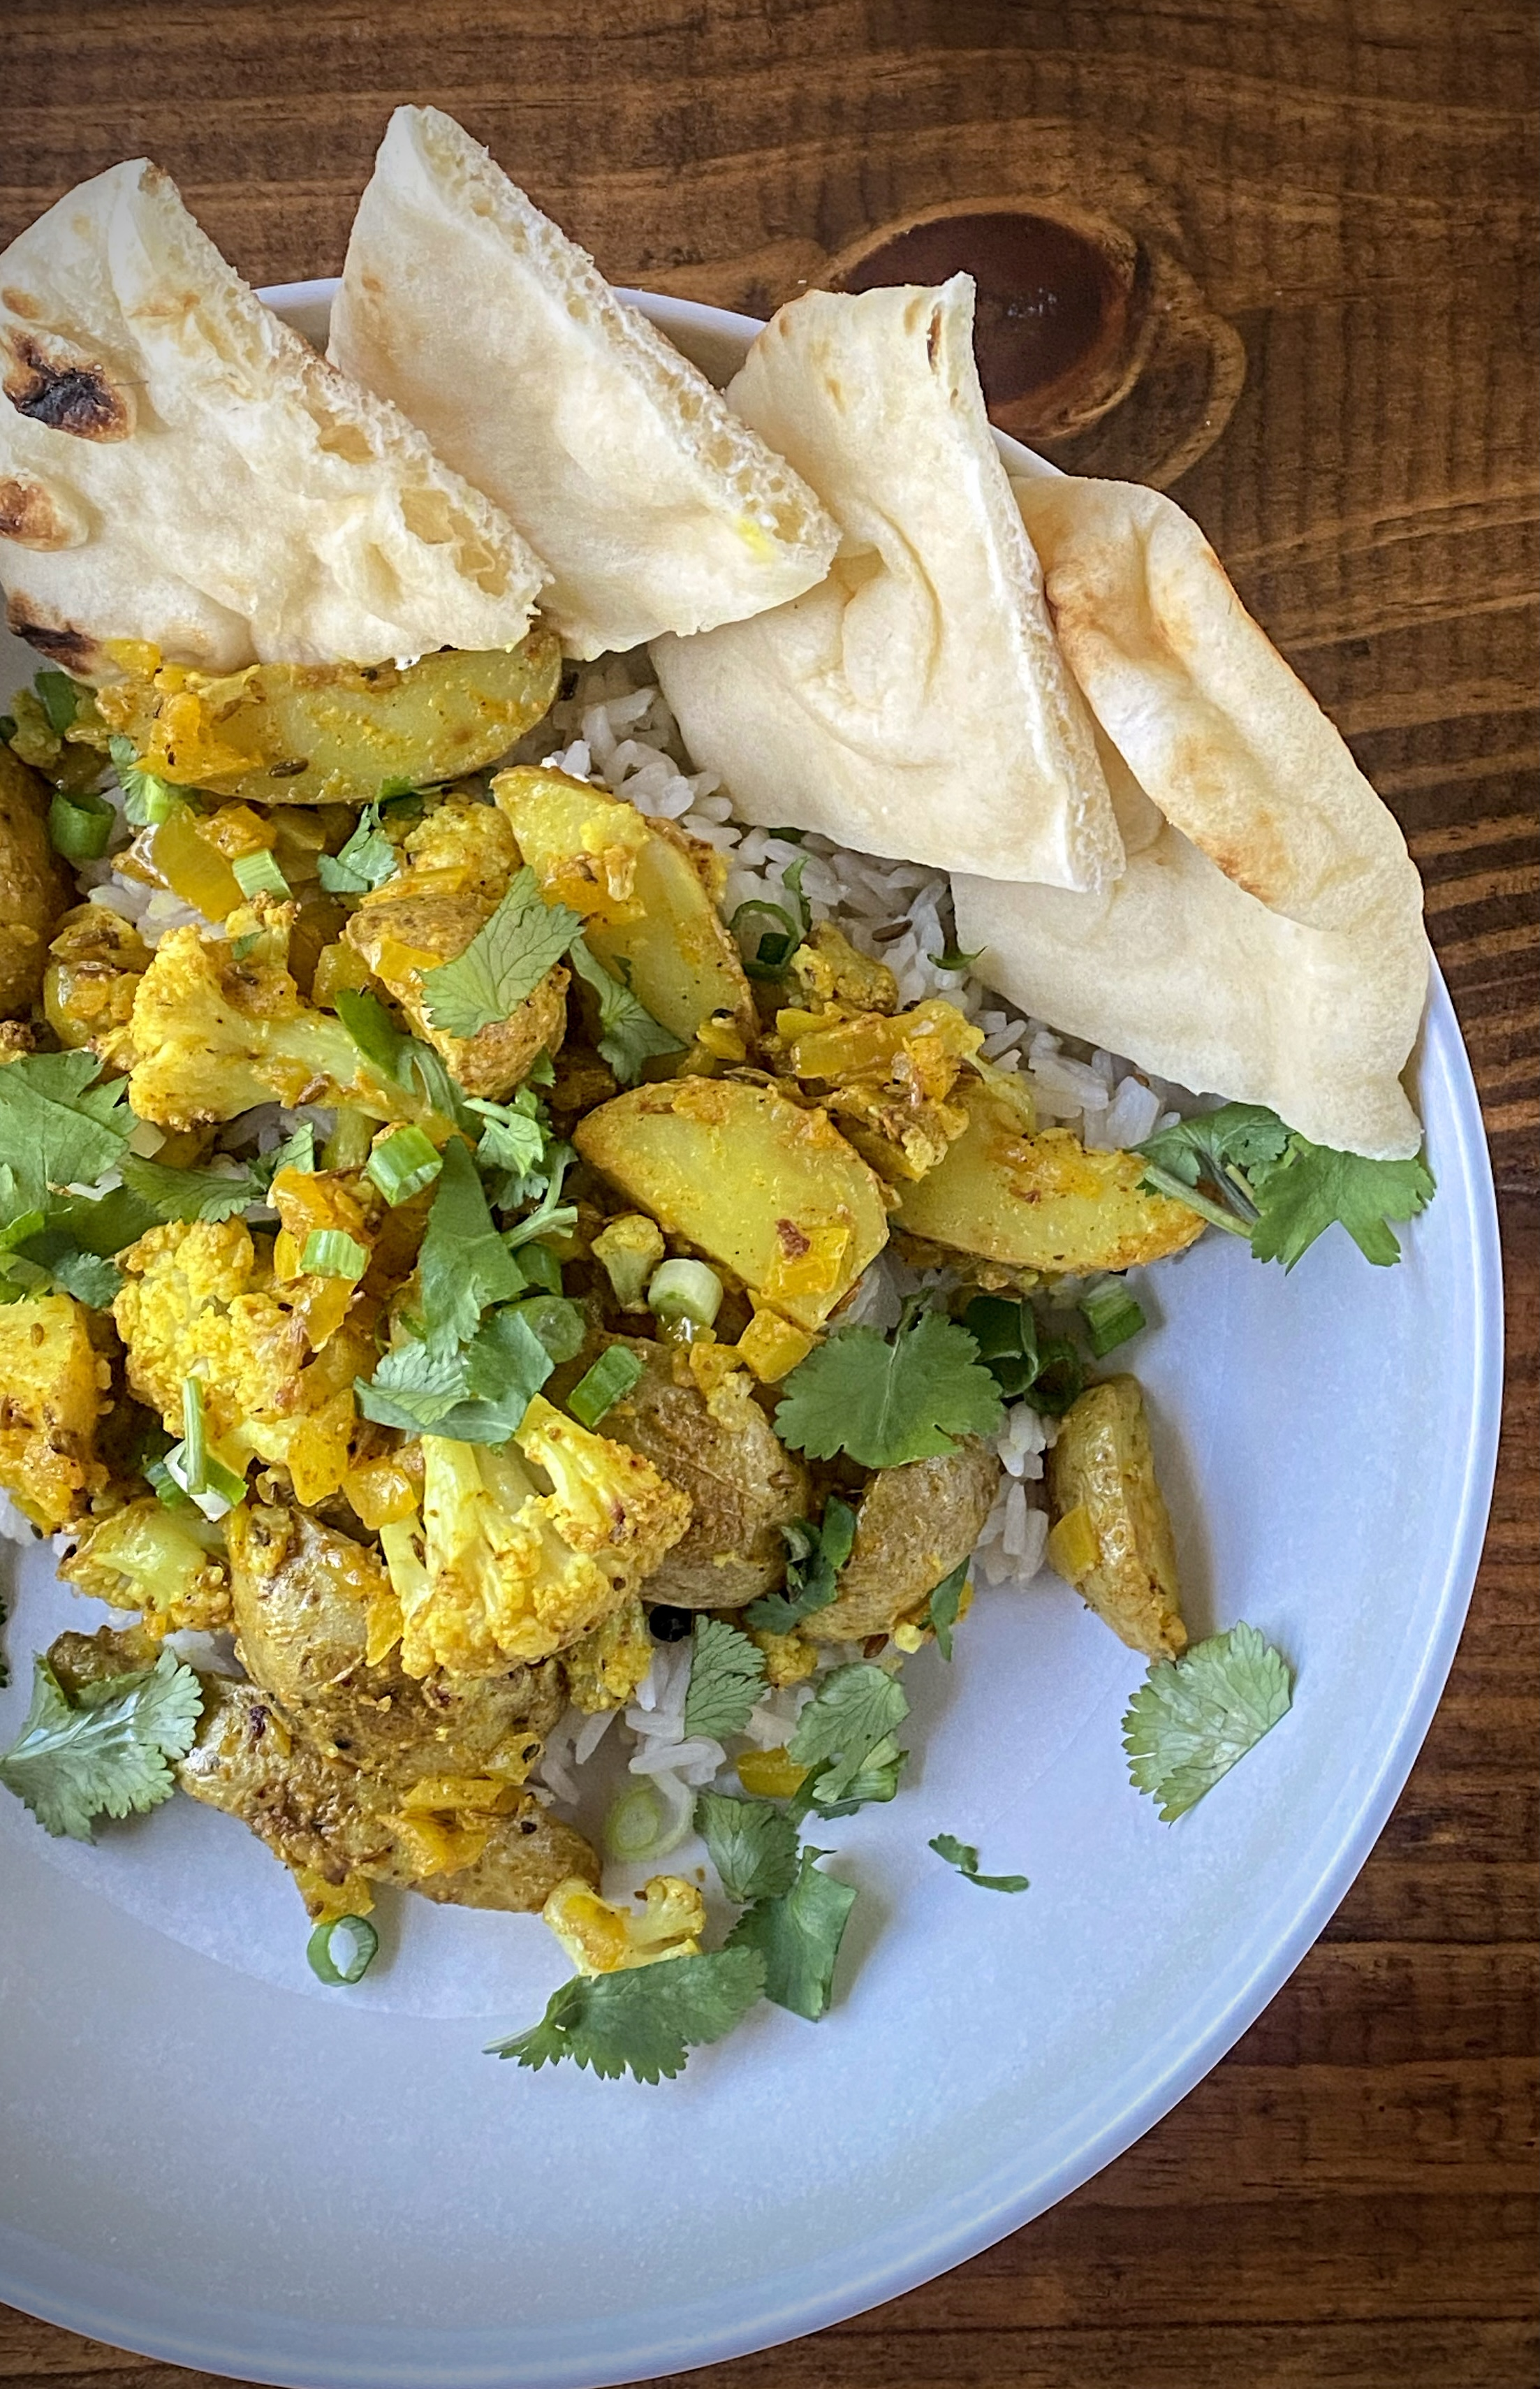 aloo gobi over cumin rice with sliced naan in a white pasta bowl on a wooden table